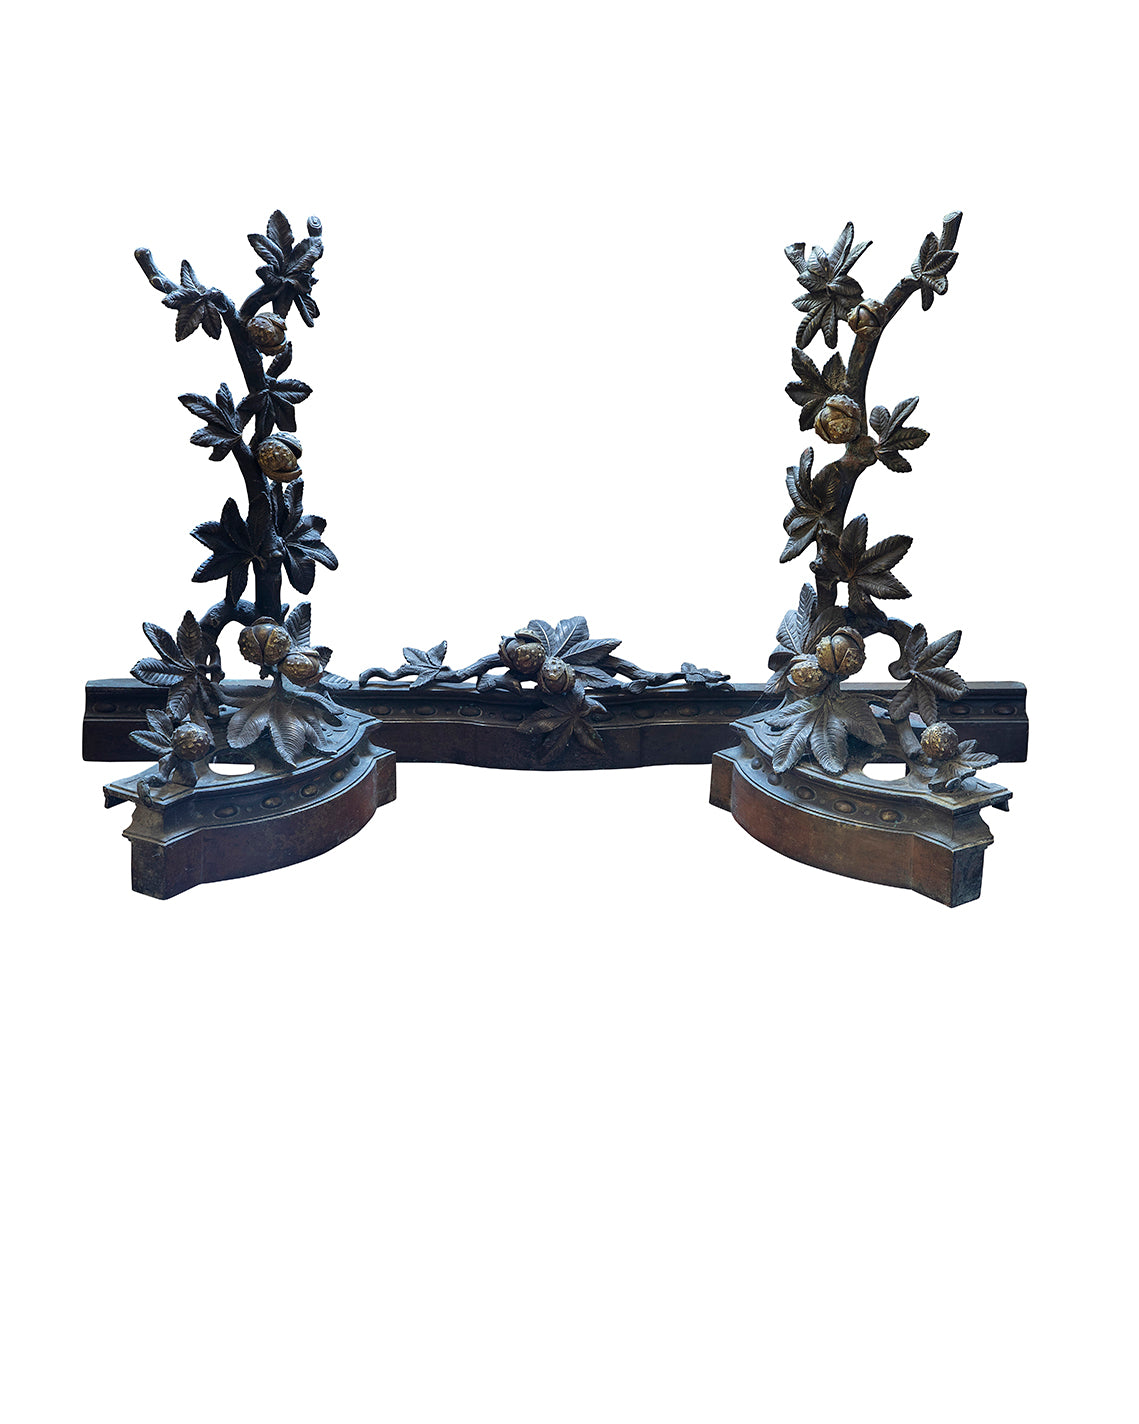 Andirons and chimney bar with chestnut branches decoration. End of the XIXth century